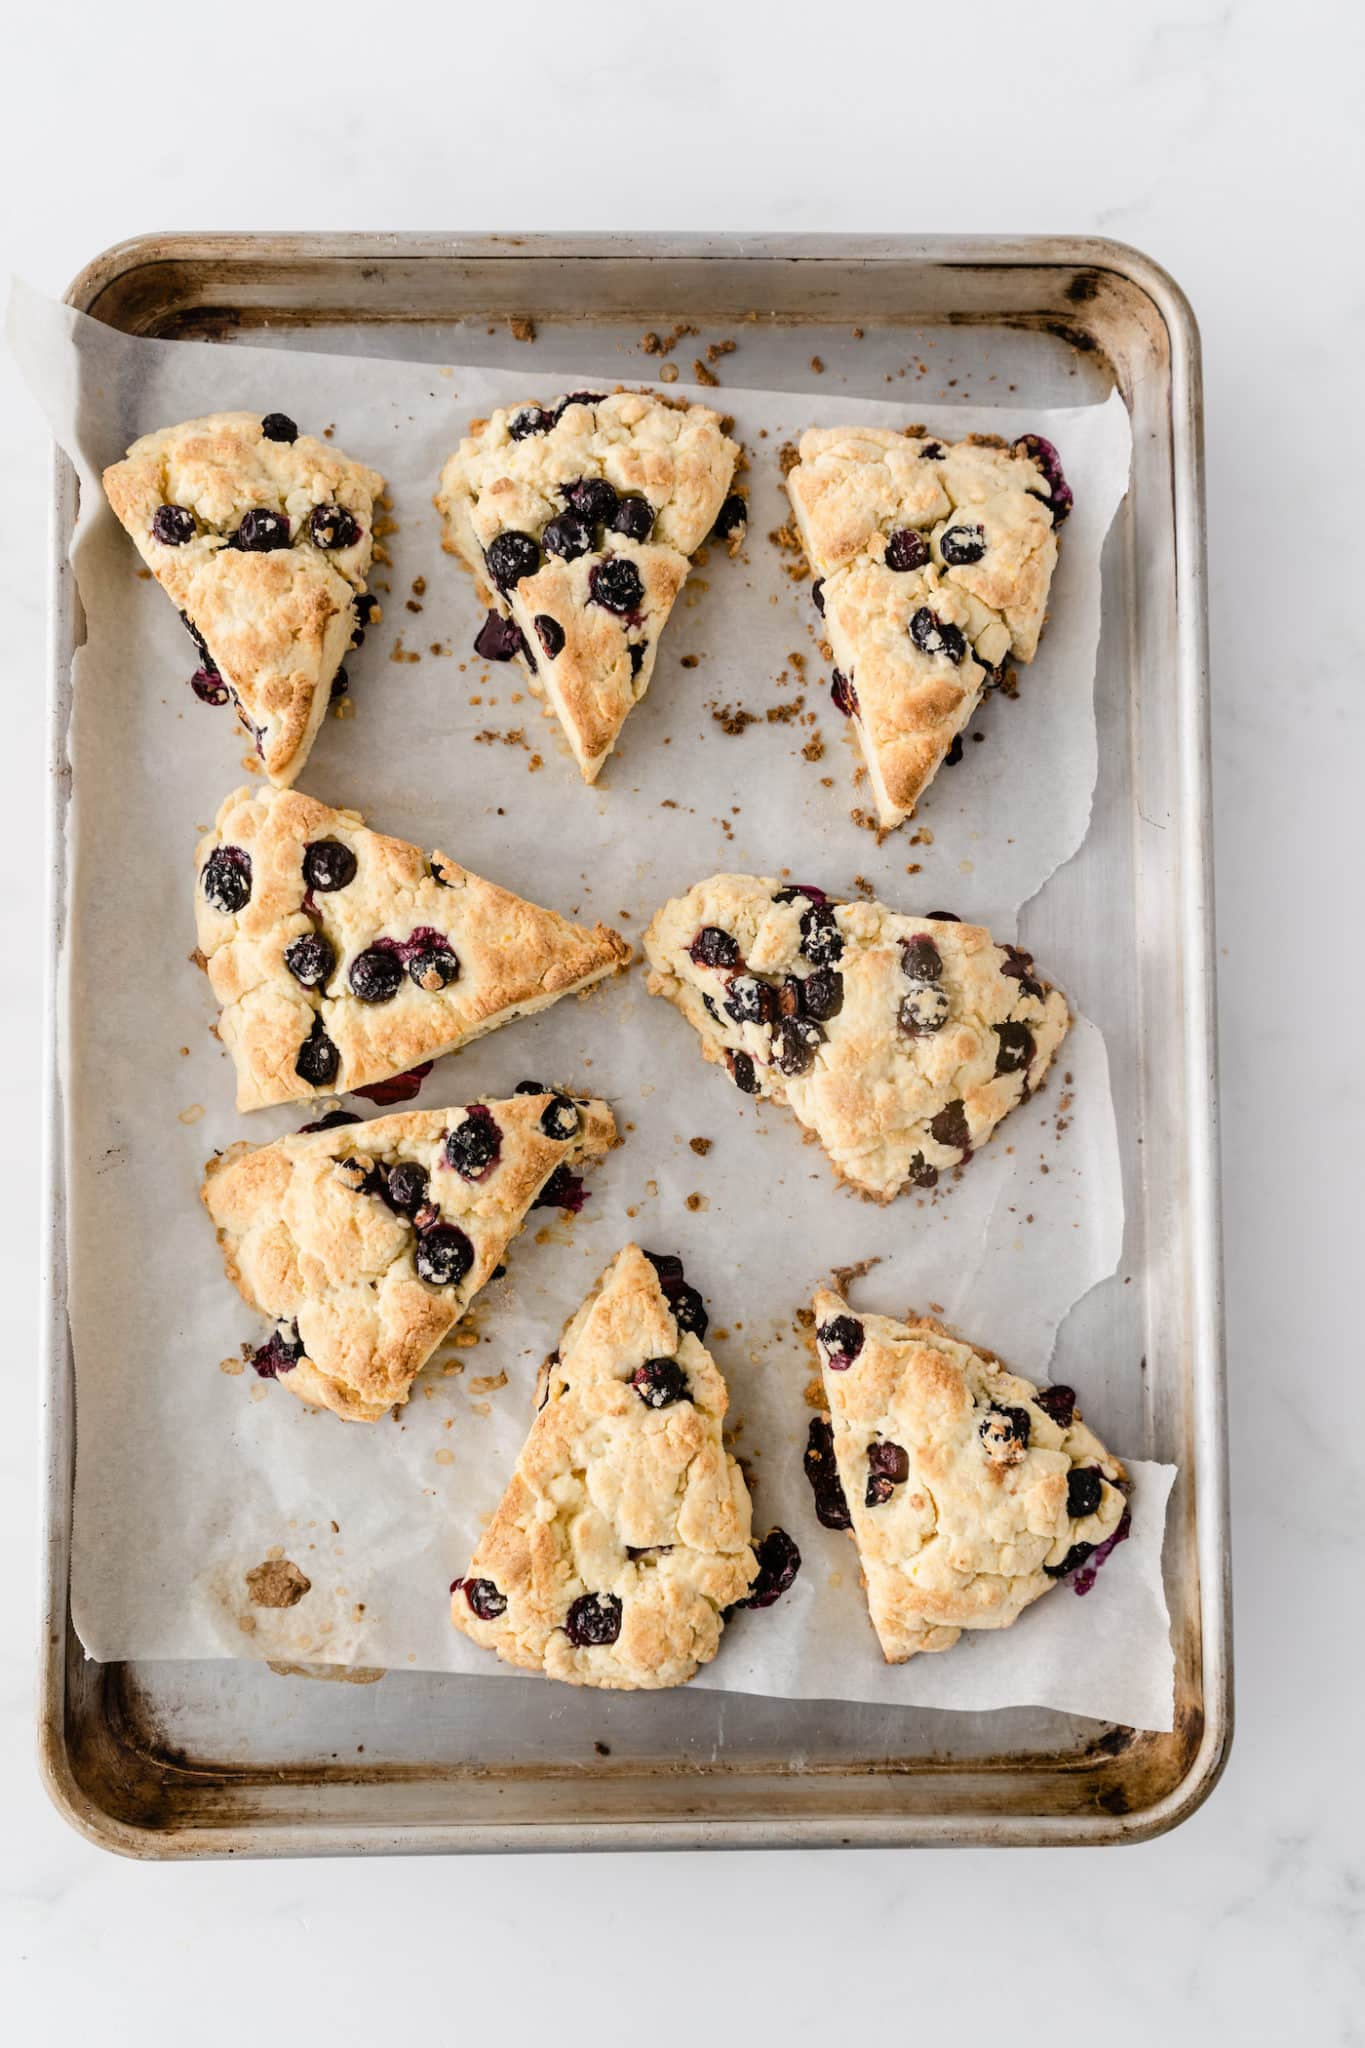 baked blueberry scones on a baking sheet